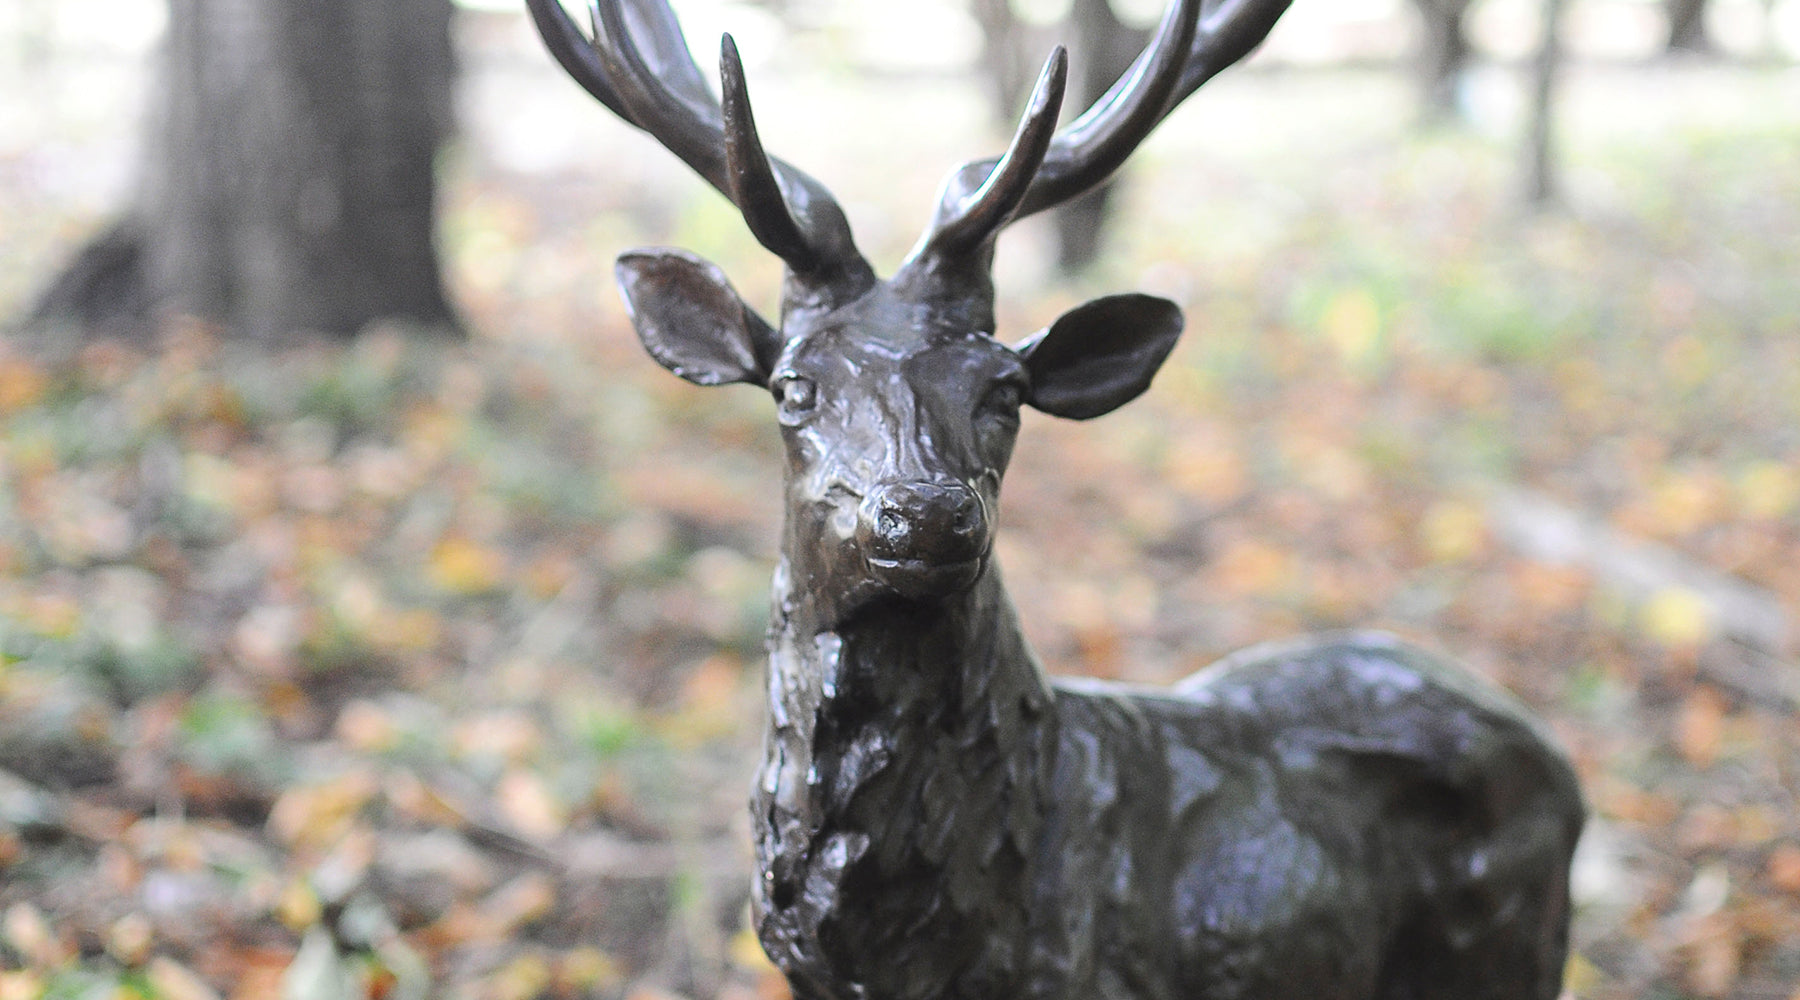 Luxury Bronze Garden Sculptures by Sophie Allport